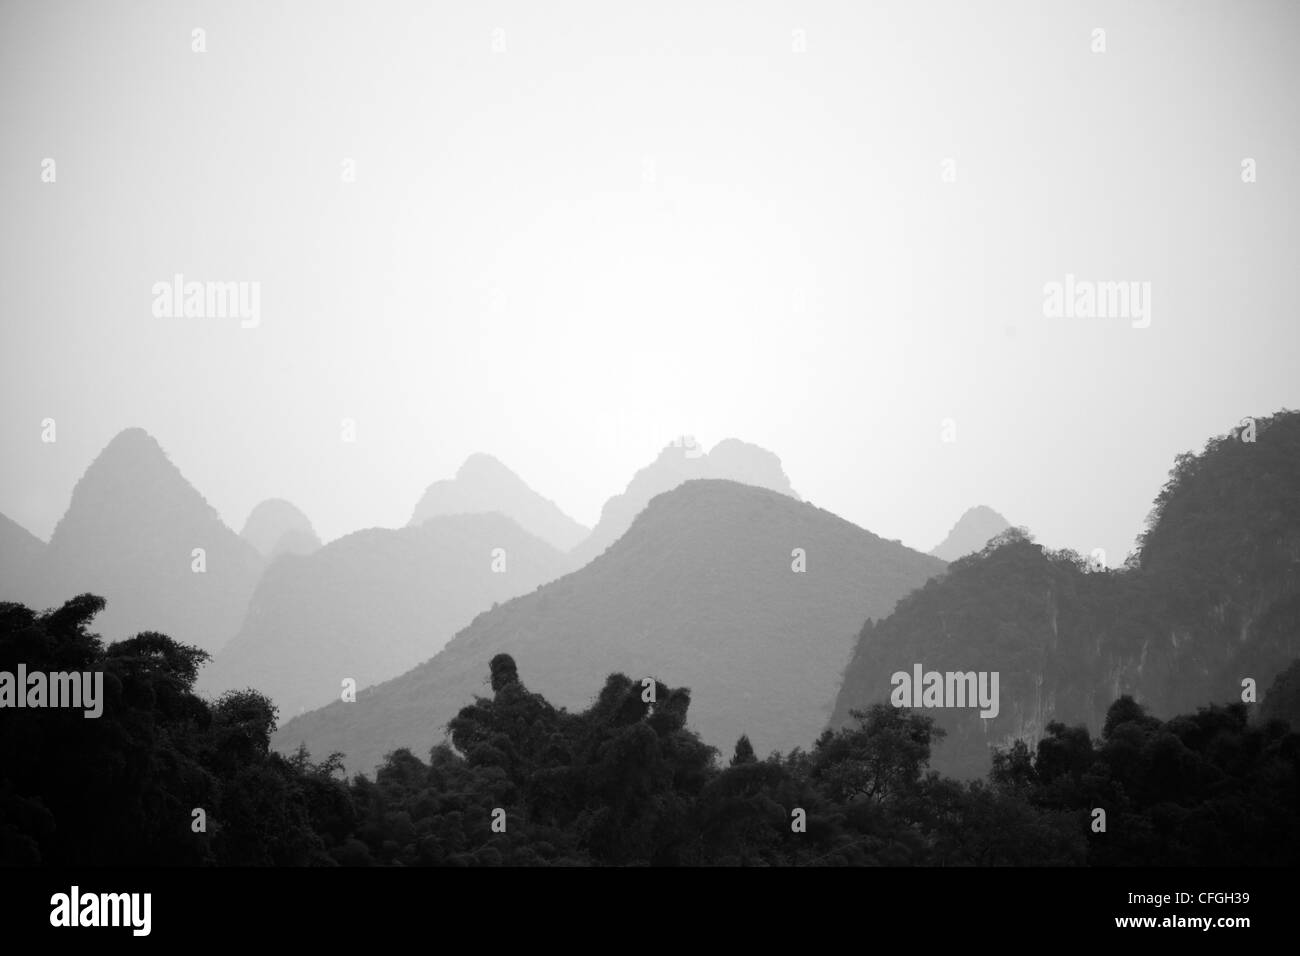 Karst mountains in Yangshuo, rural China Stock Photo